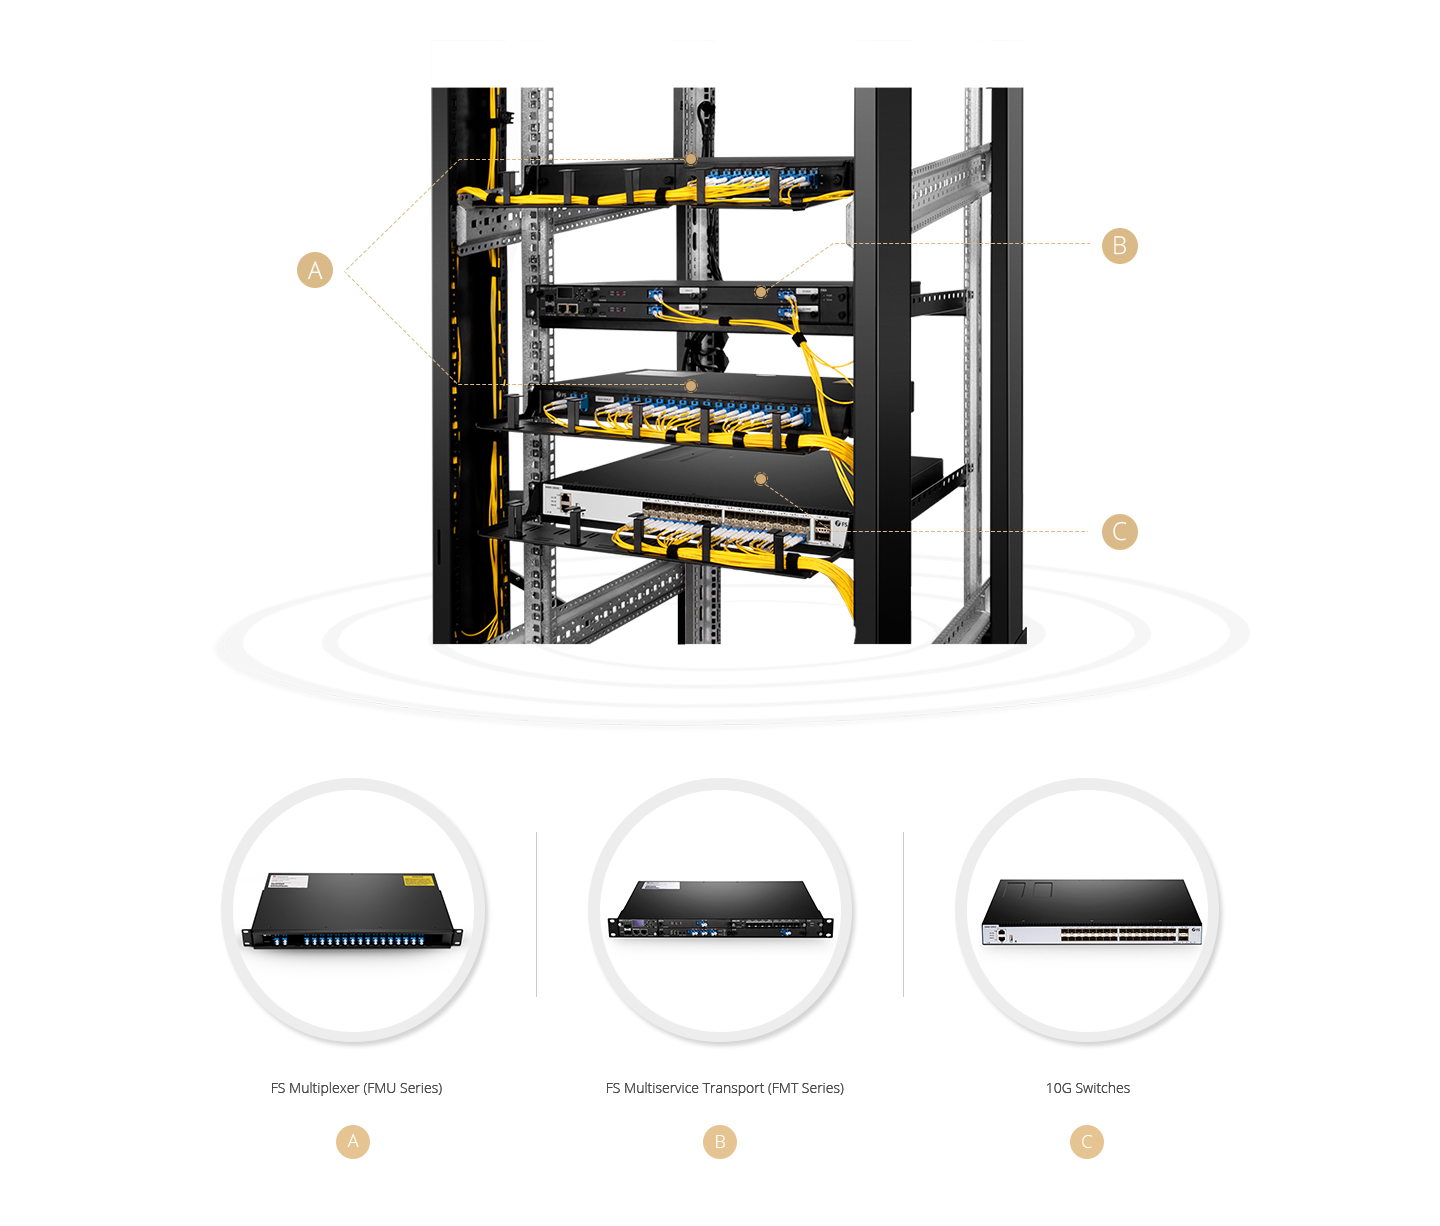 DWDM OADM  Remarkable Concentration and Manageability